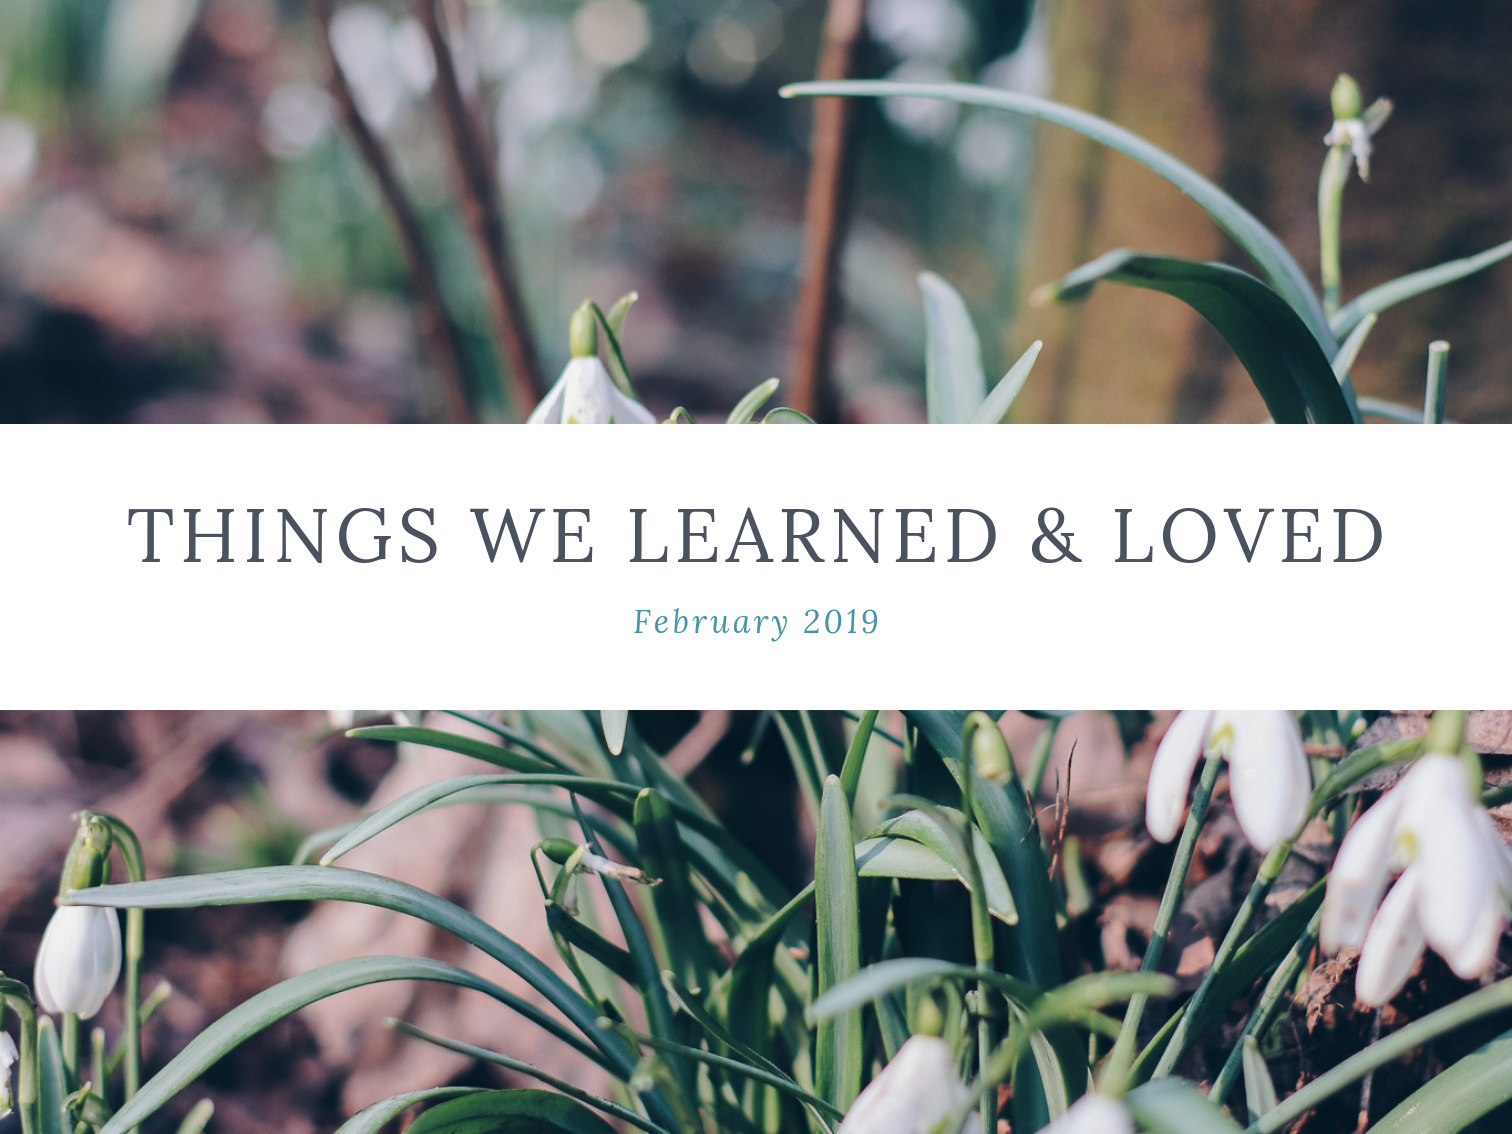 laura-rose-creative-things-we-learned-loved-february